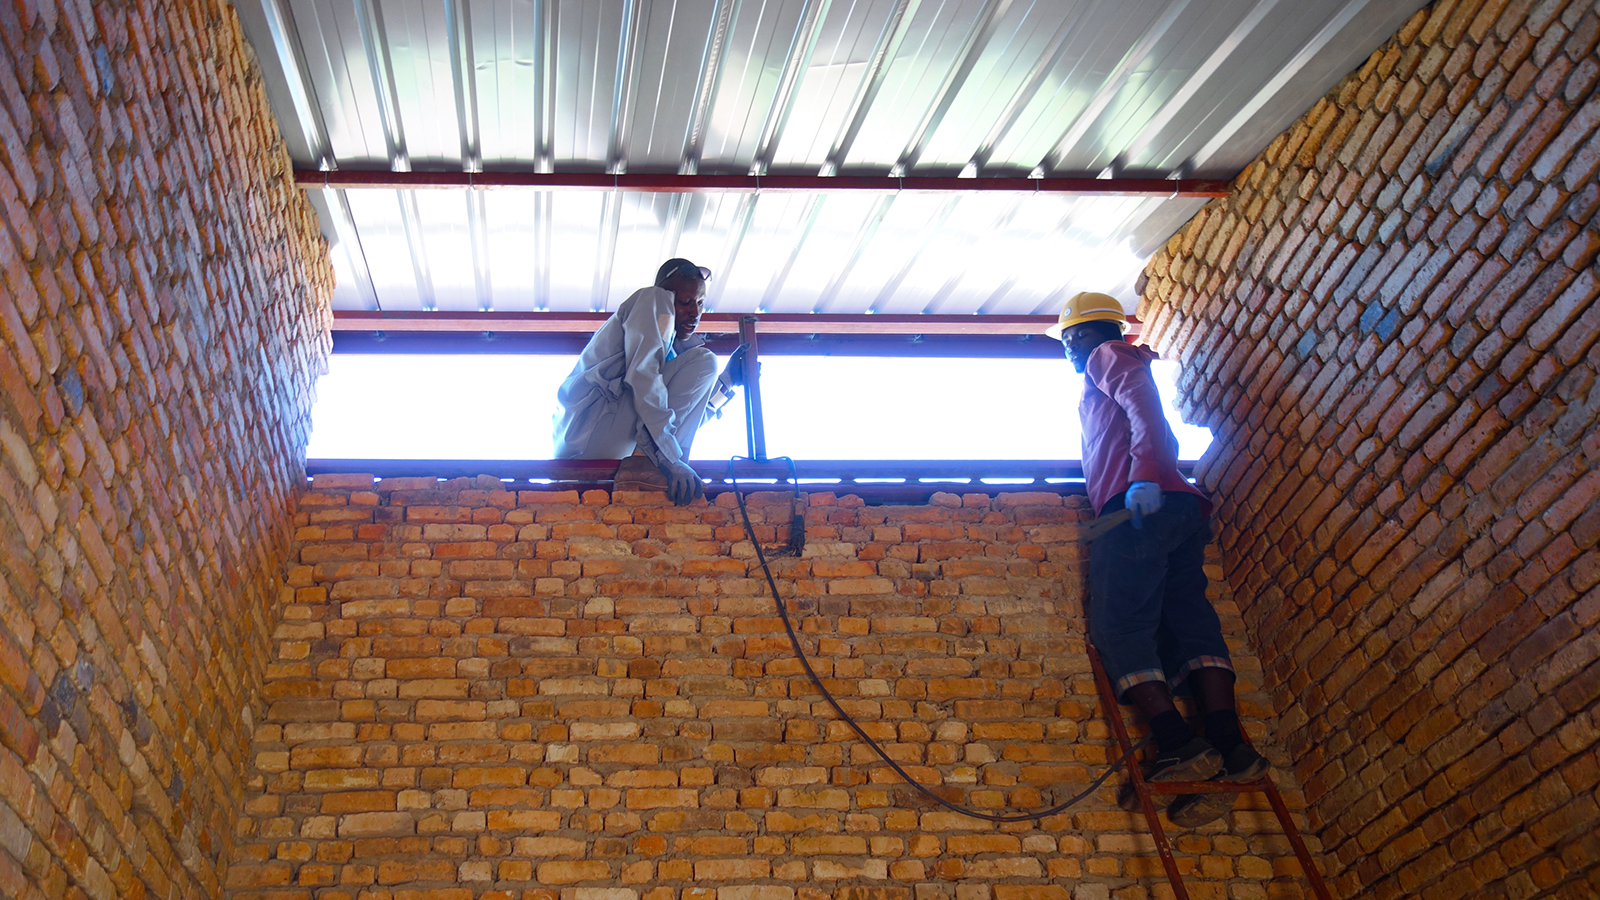 GACollaborative_MasoroHealthCenter_Construction23_T.jpg